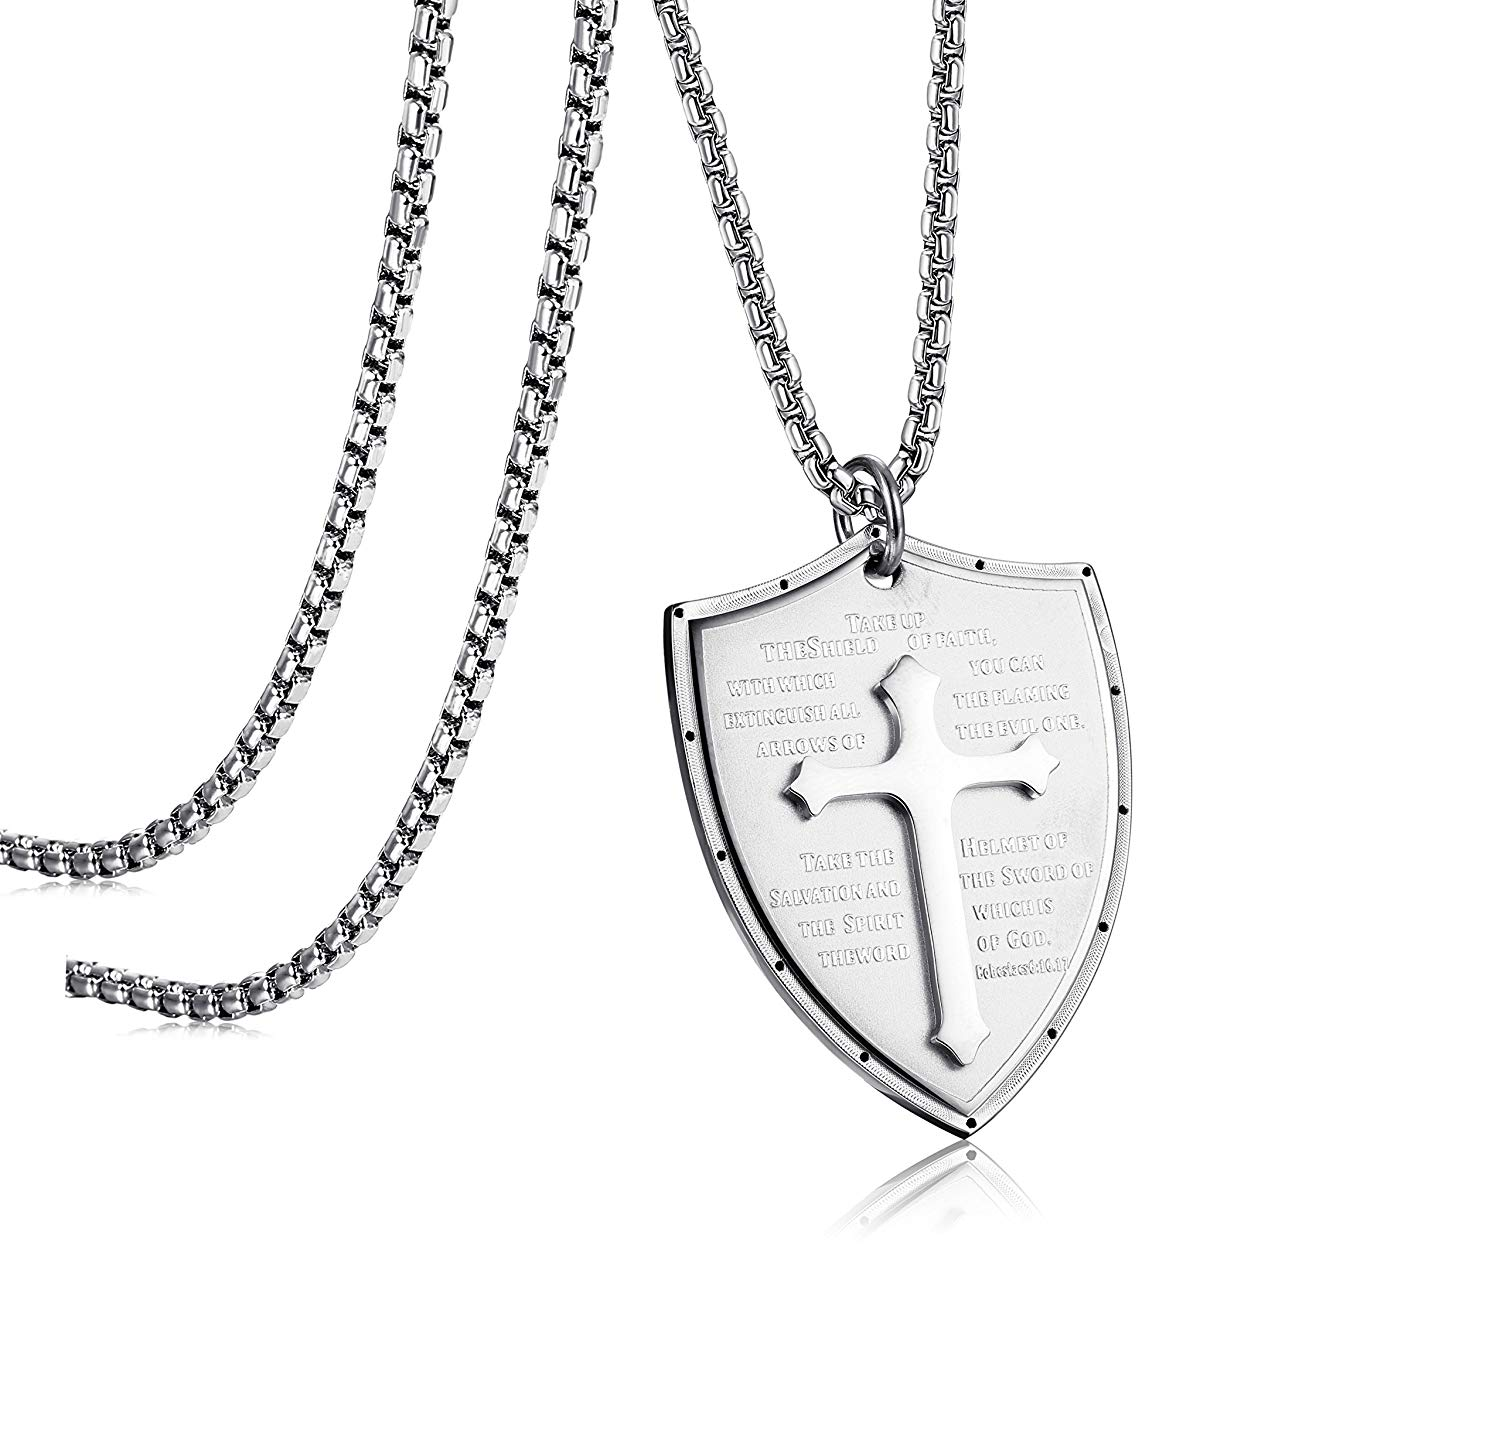 0cf96ff739013 Cheap Shield Cross Necklace, find Shield Cross Necklace deals on ...